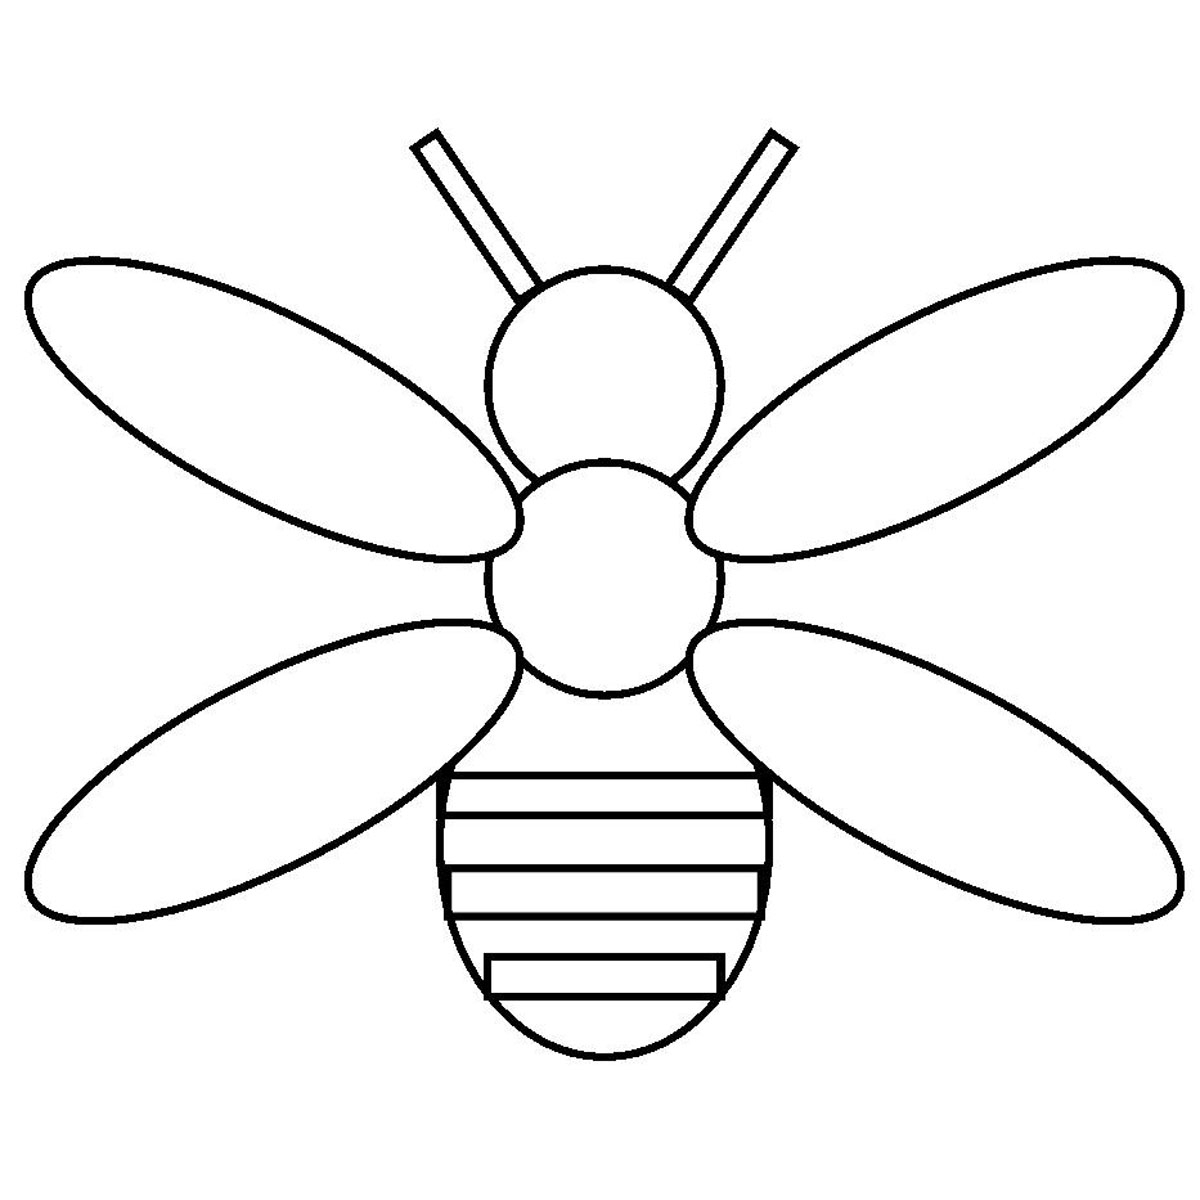 Bug Coloring Pages For Kids Bug Coloring Pages For Kids Printable Coloring Page For Kids